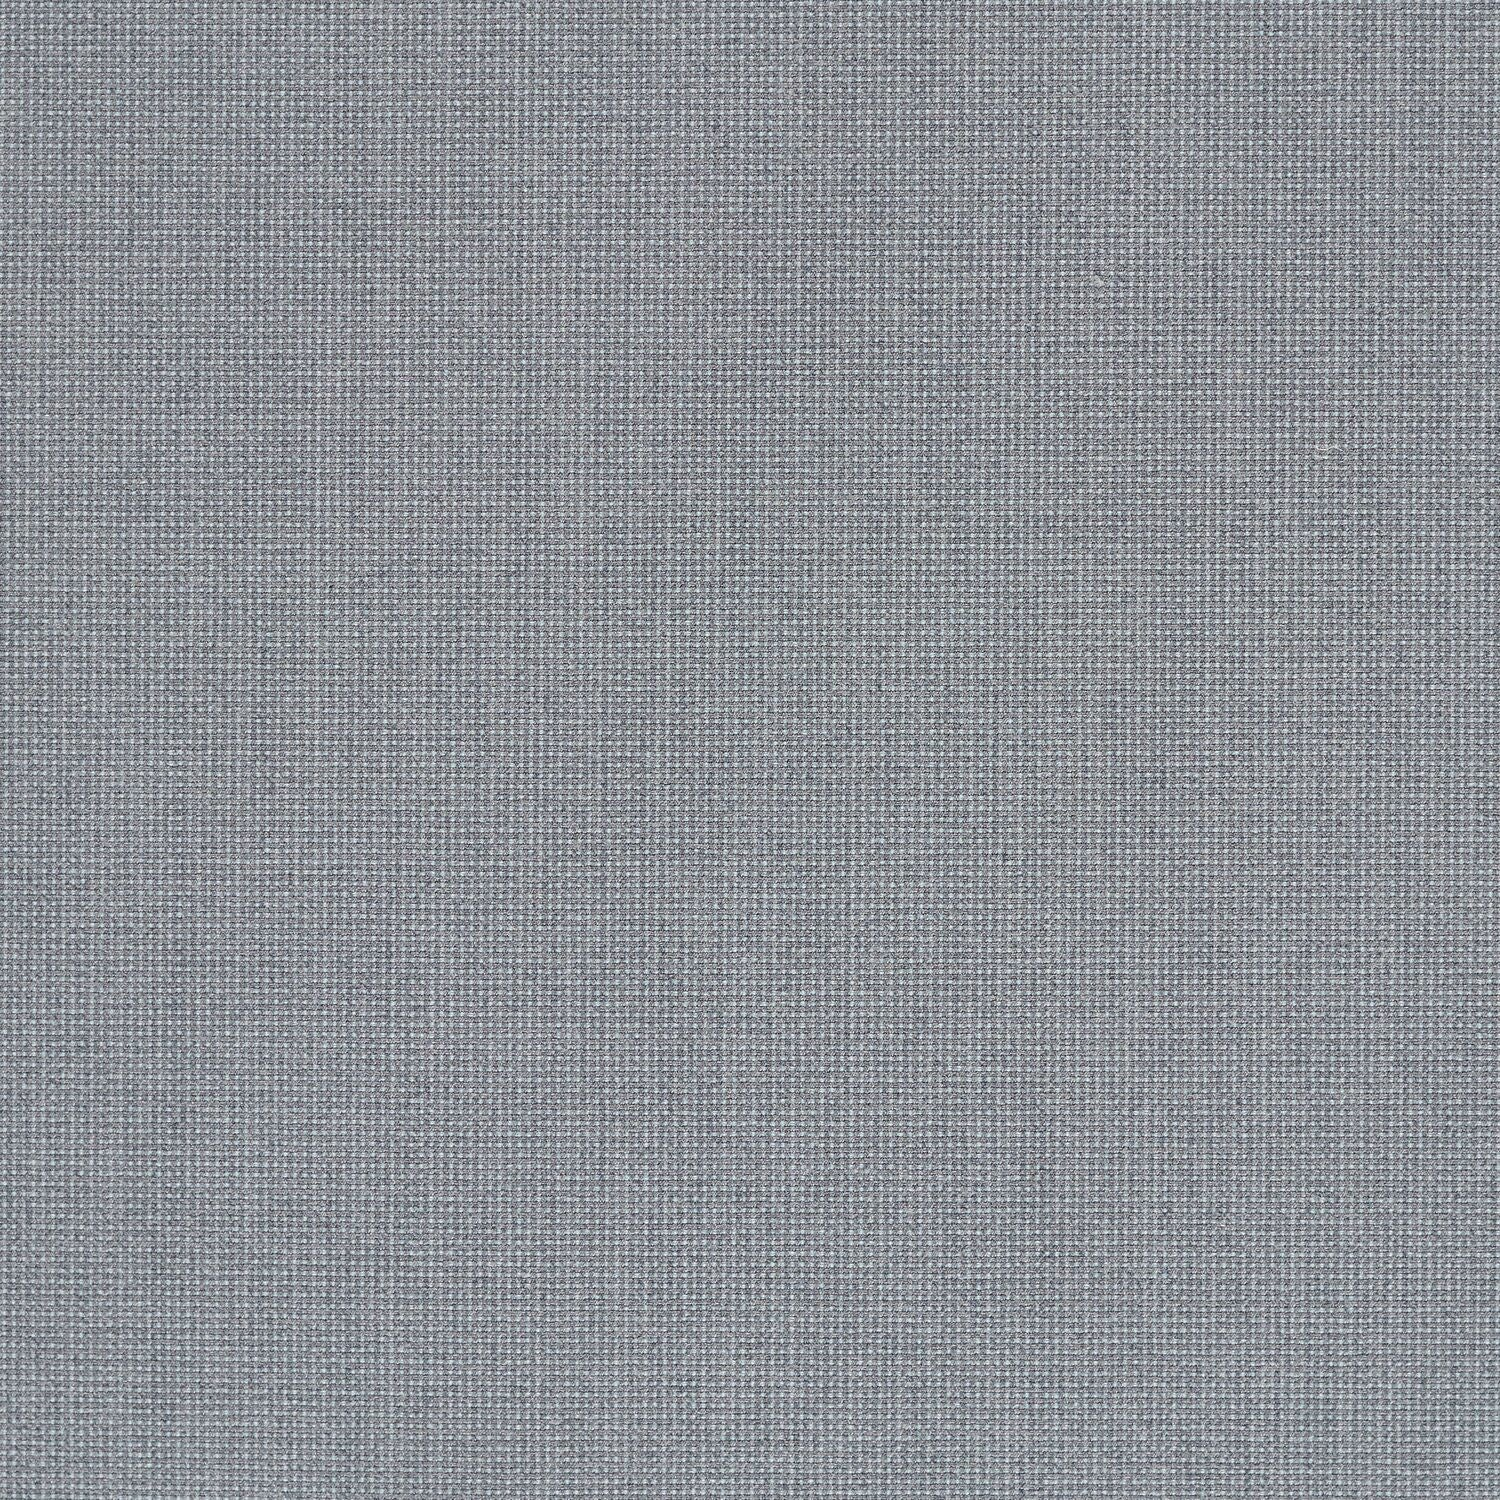 Elastic Wool - Mercury - 4067 - 03